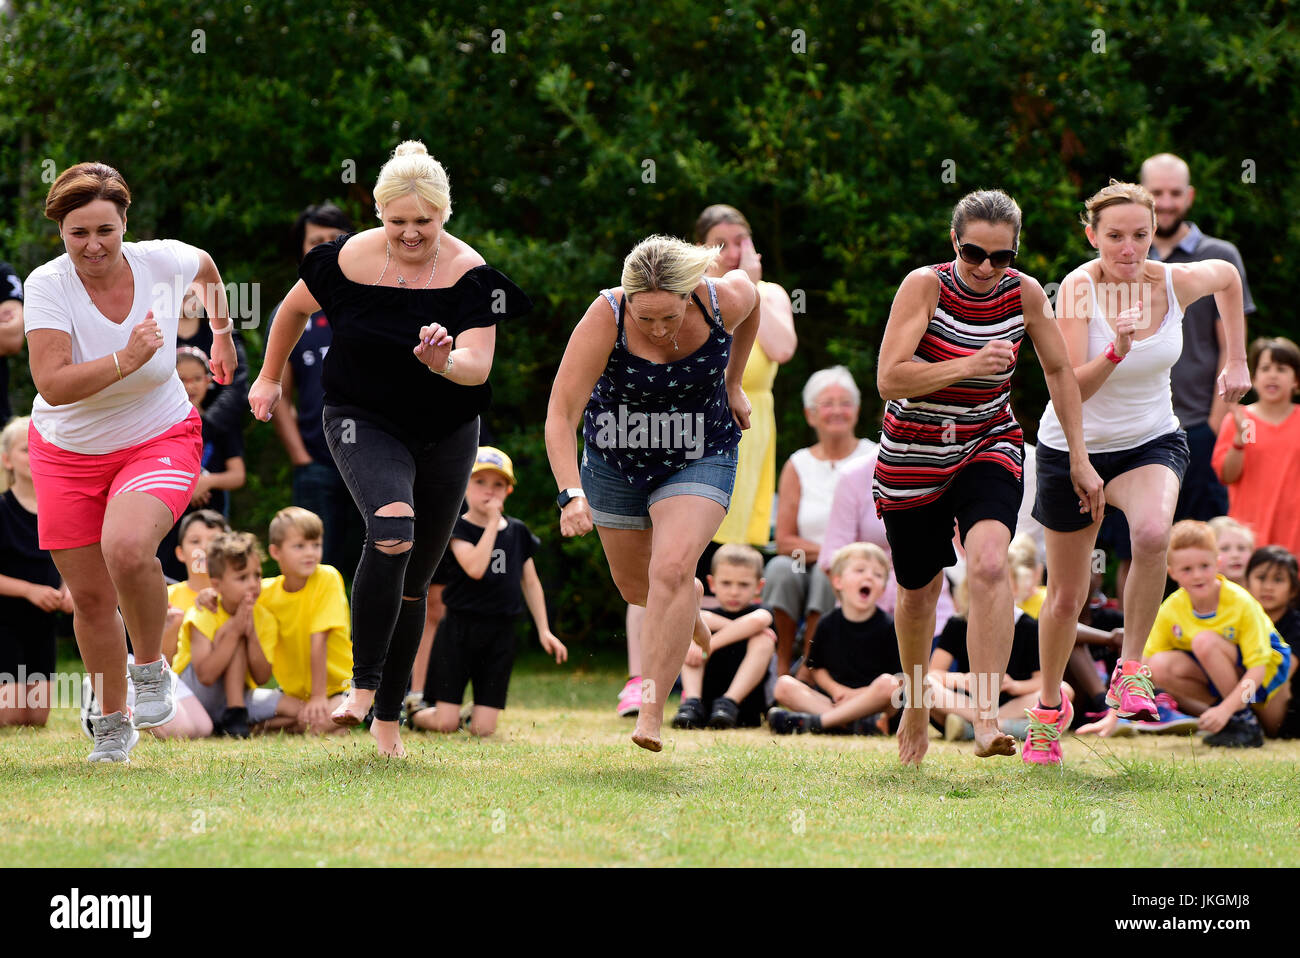 Mum's race event at an infant school sports day, Bordon, Hampshire, UK. 14 July 2017. - Stock Image